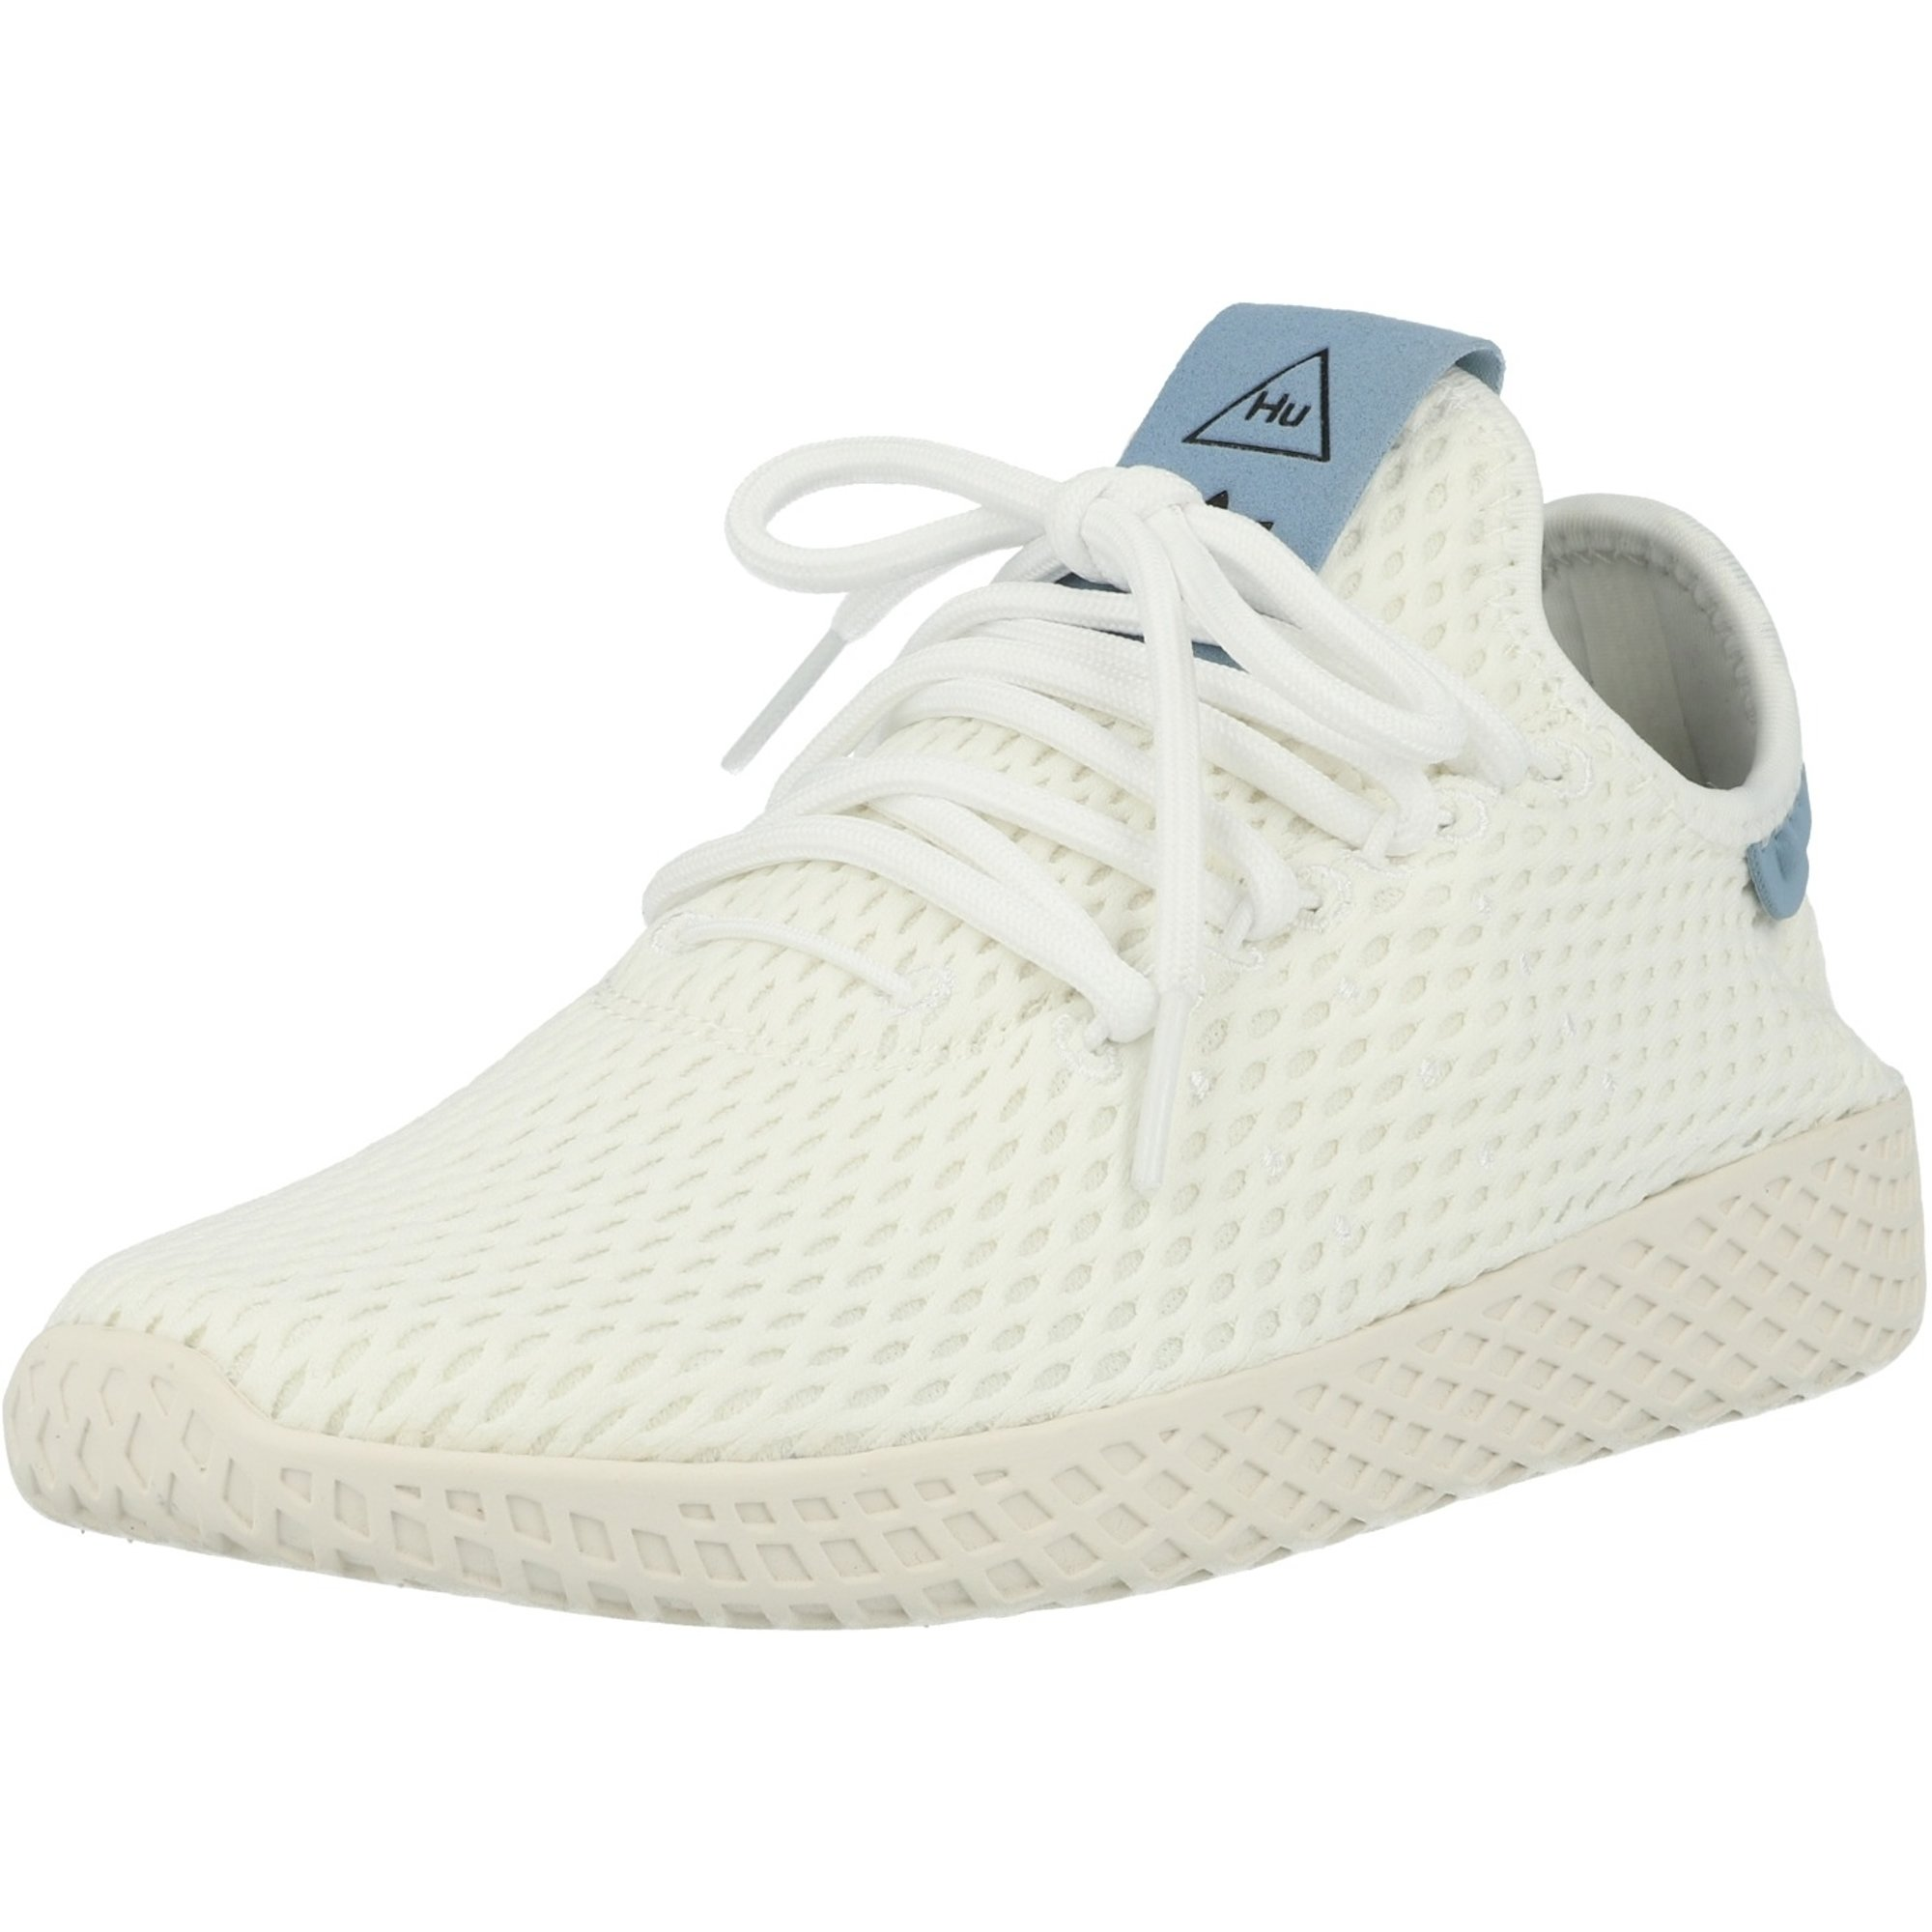 esponja zona Respetuoso  adidas Originals Pharrell Williams Tennis Hu White/Blue Textile - Trainers  Shoes - Awesome Shoes